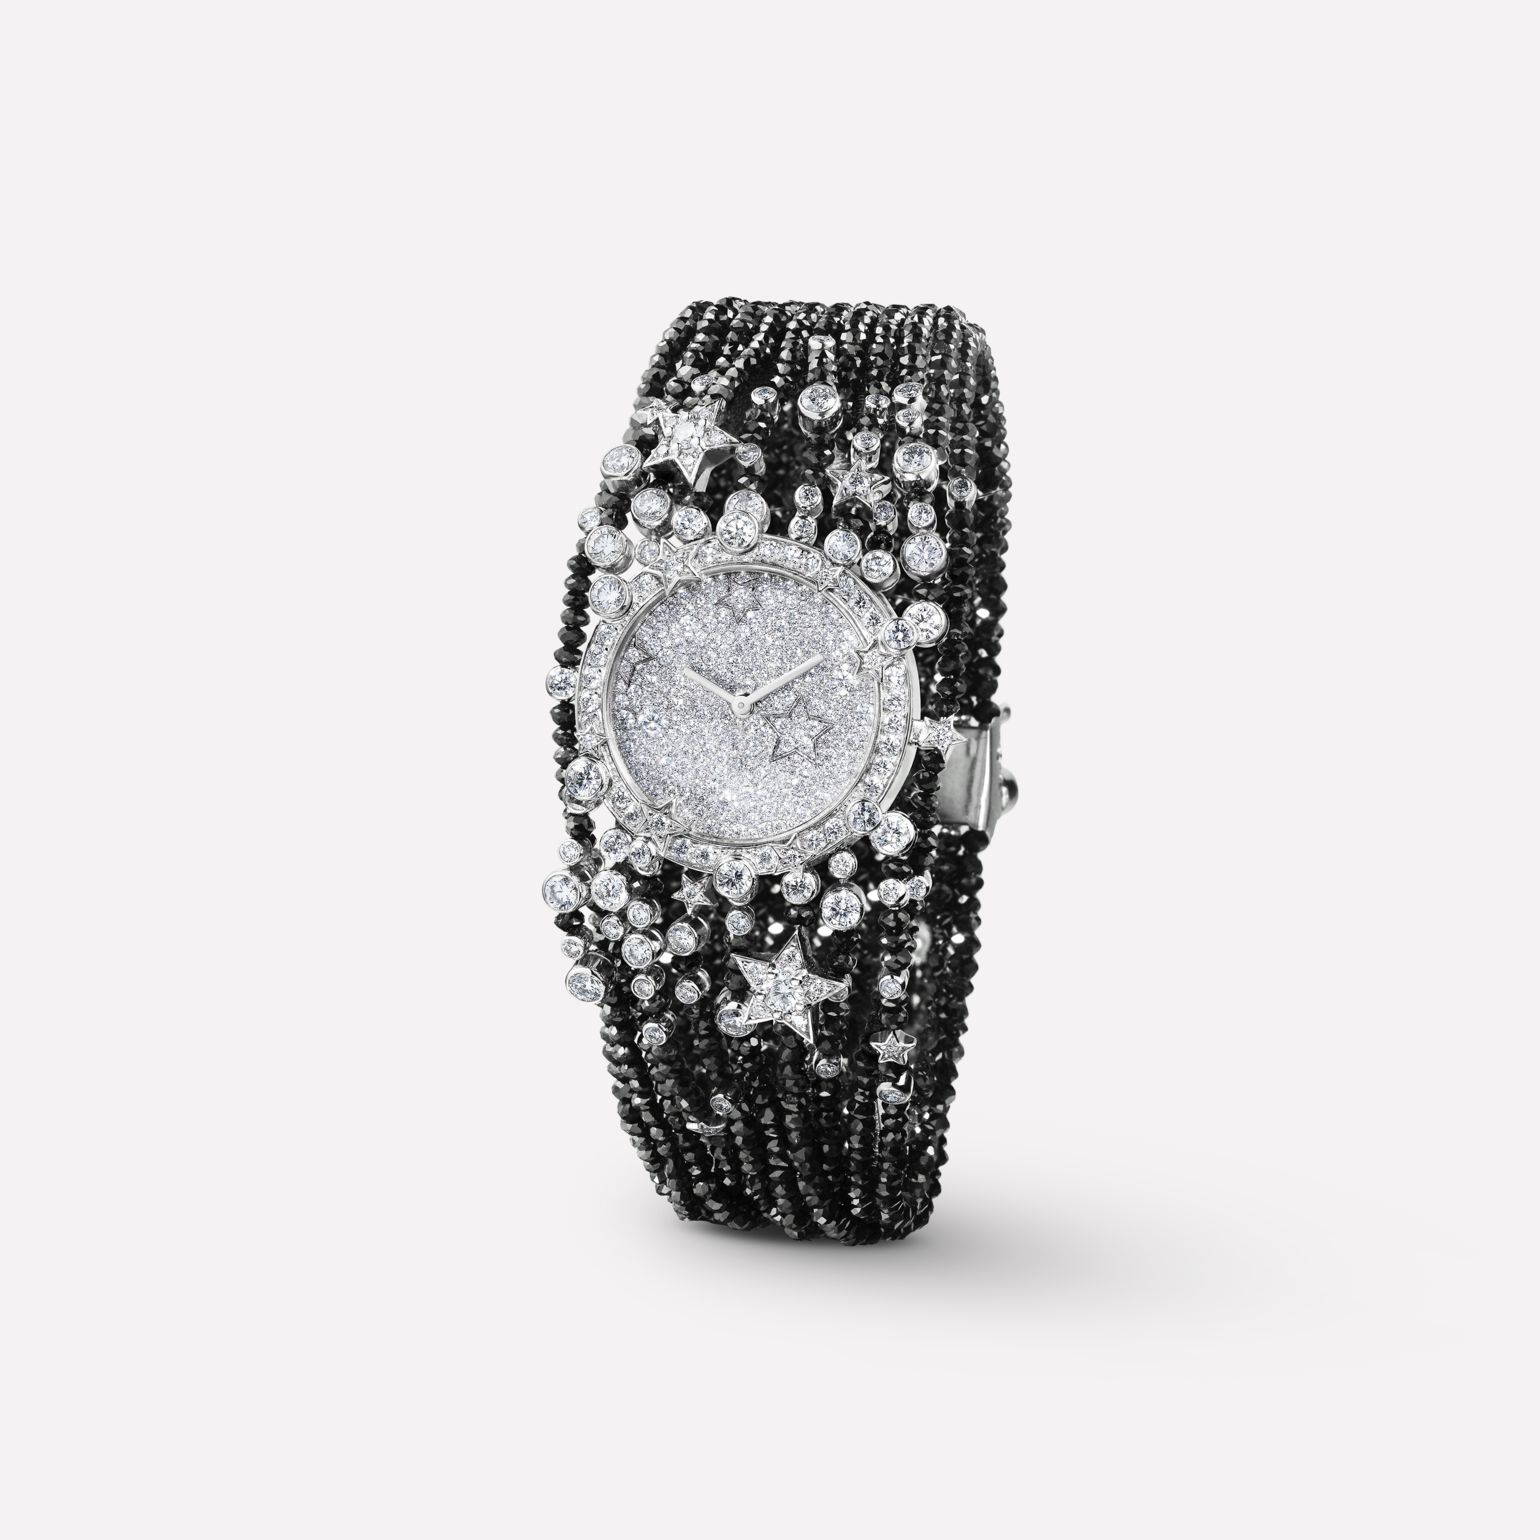 Comète Jewelry Watch Starry night motif in 18K white gold and black and white diamonds